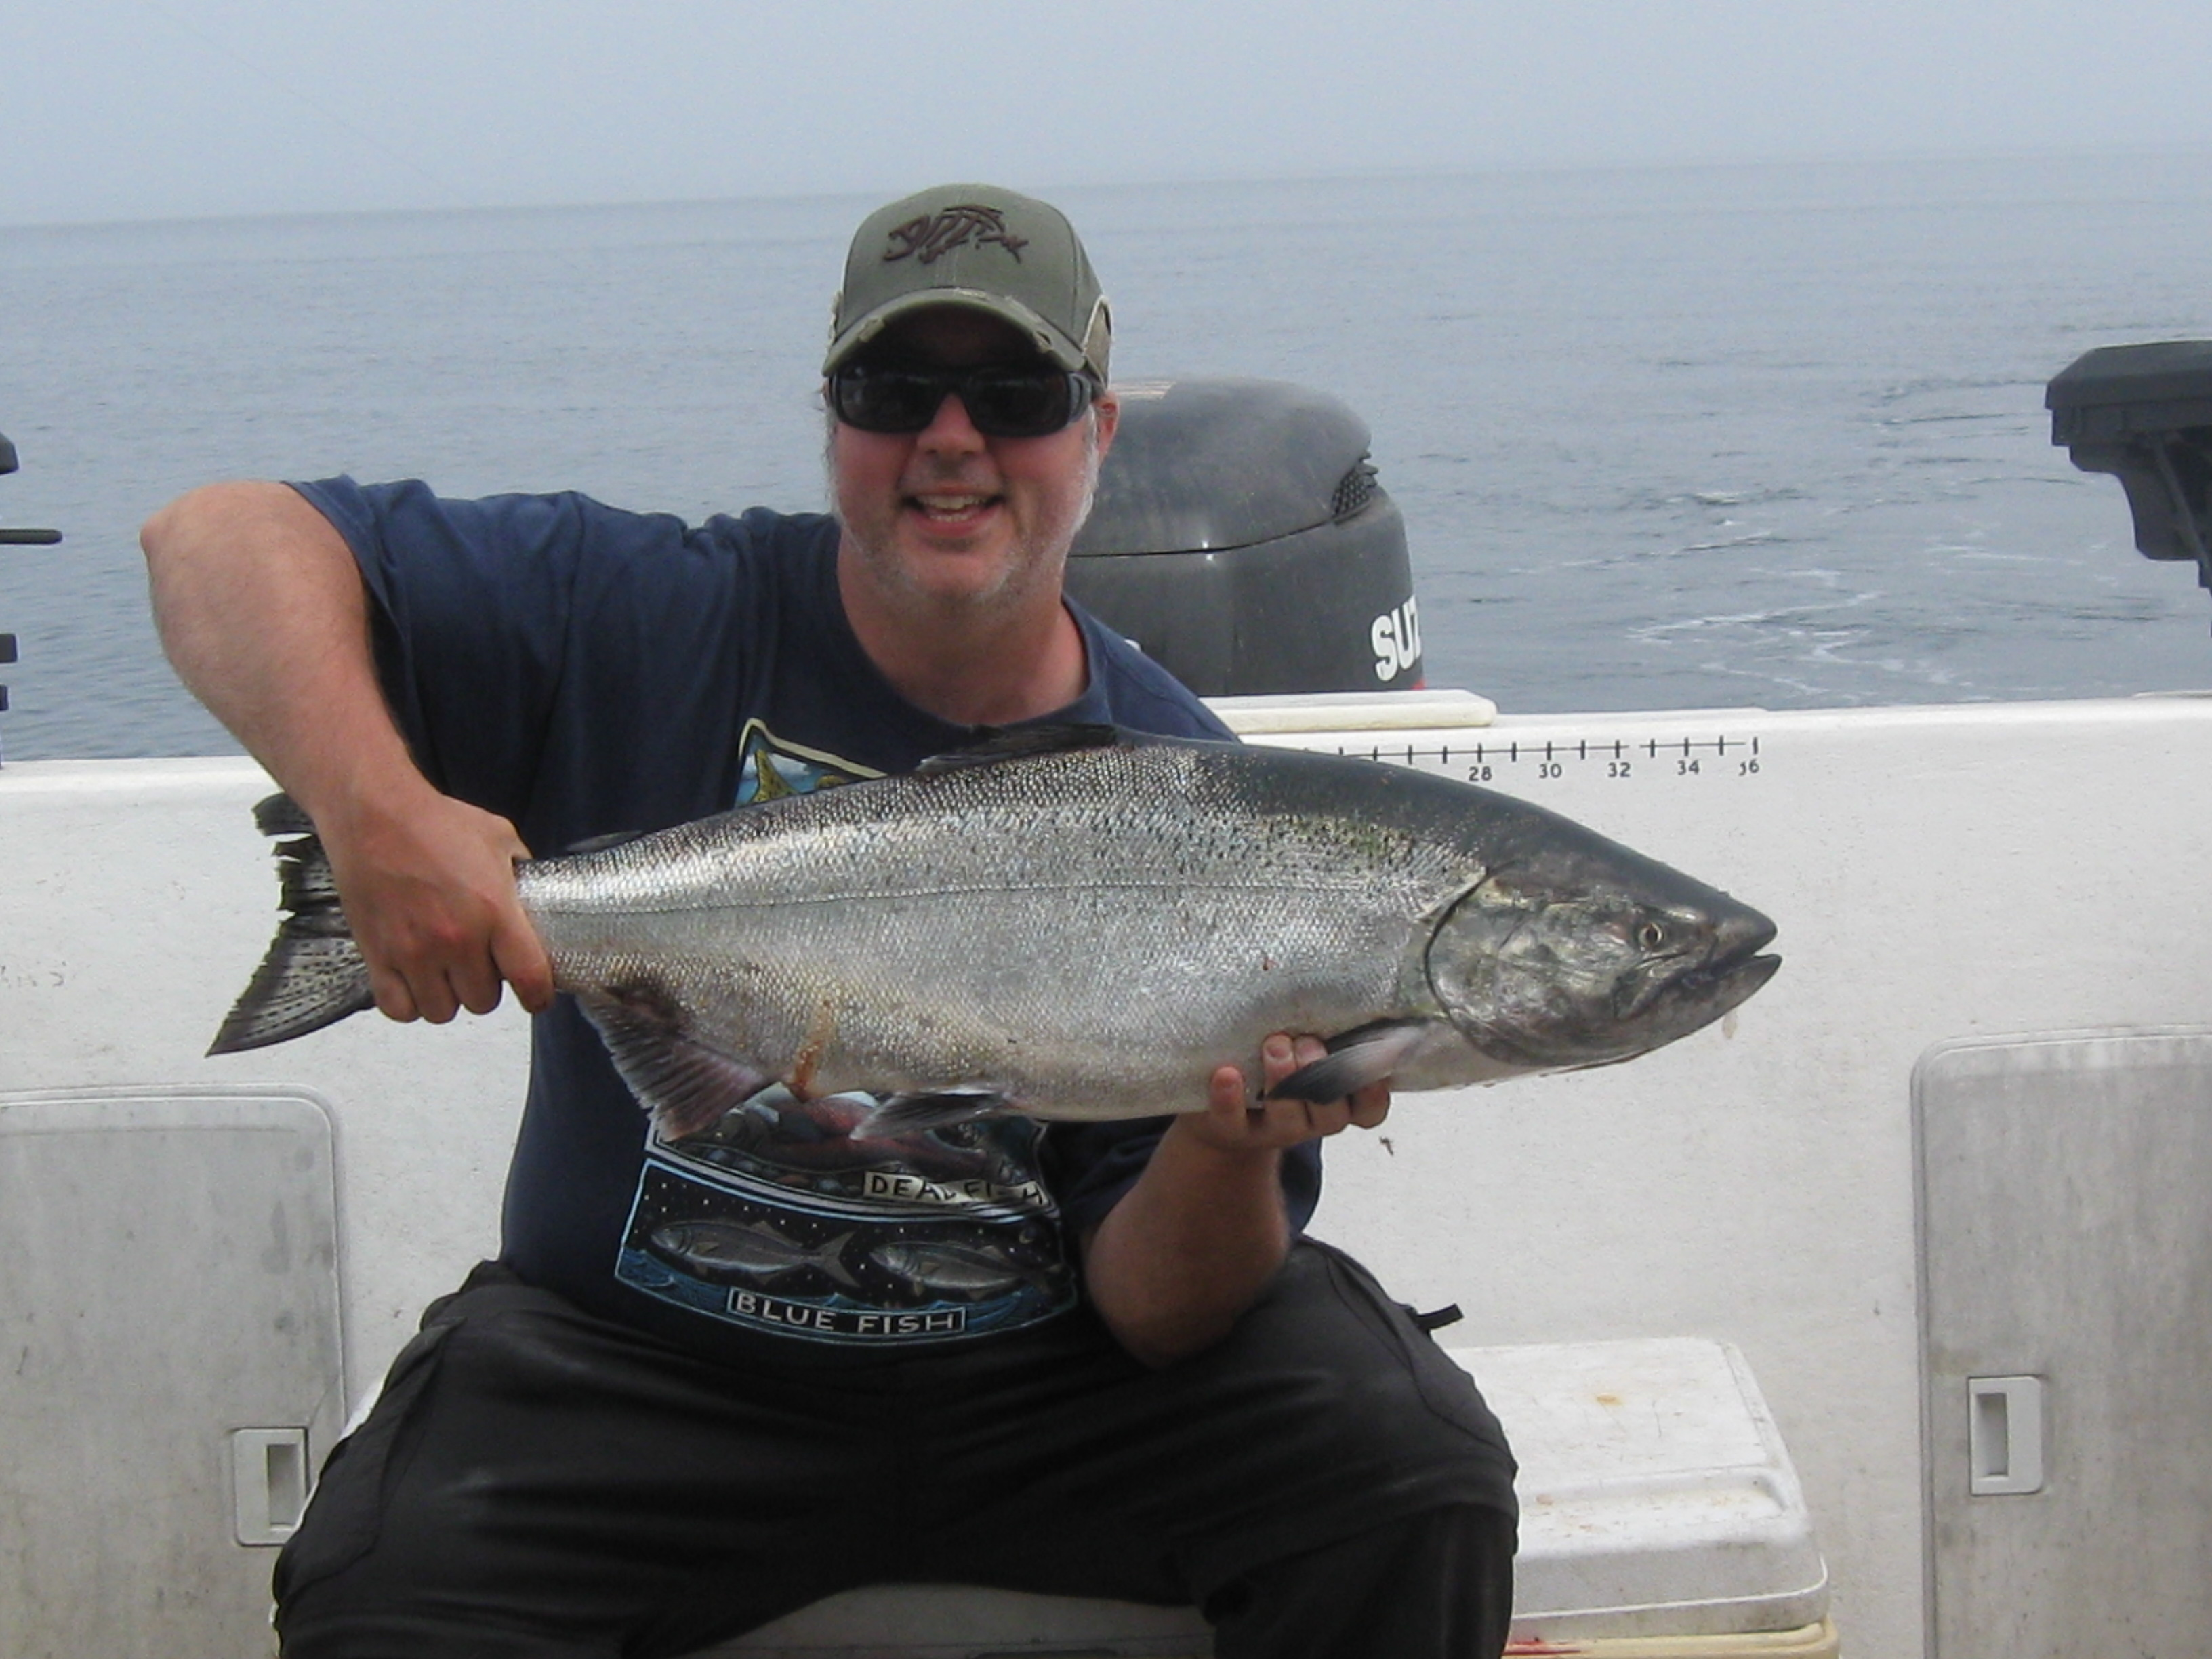 World Class Guided Sports fishing BC